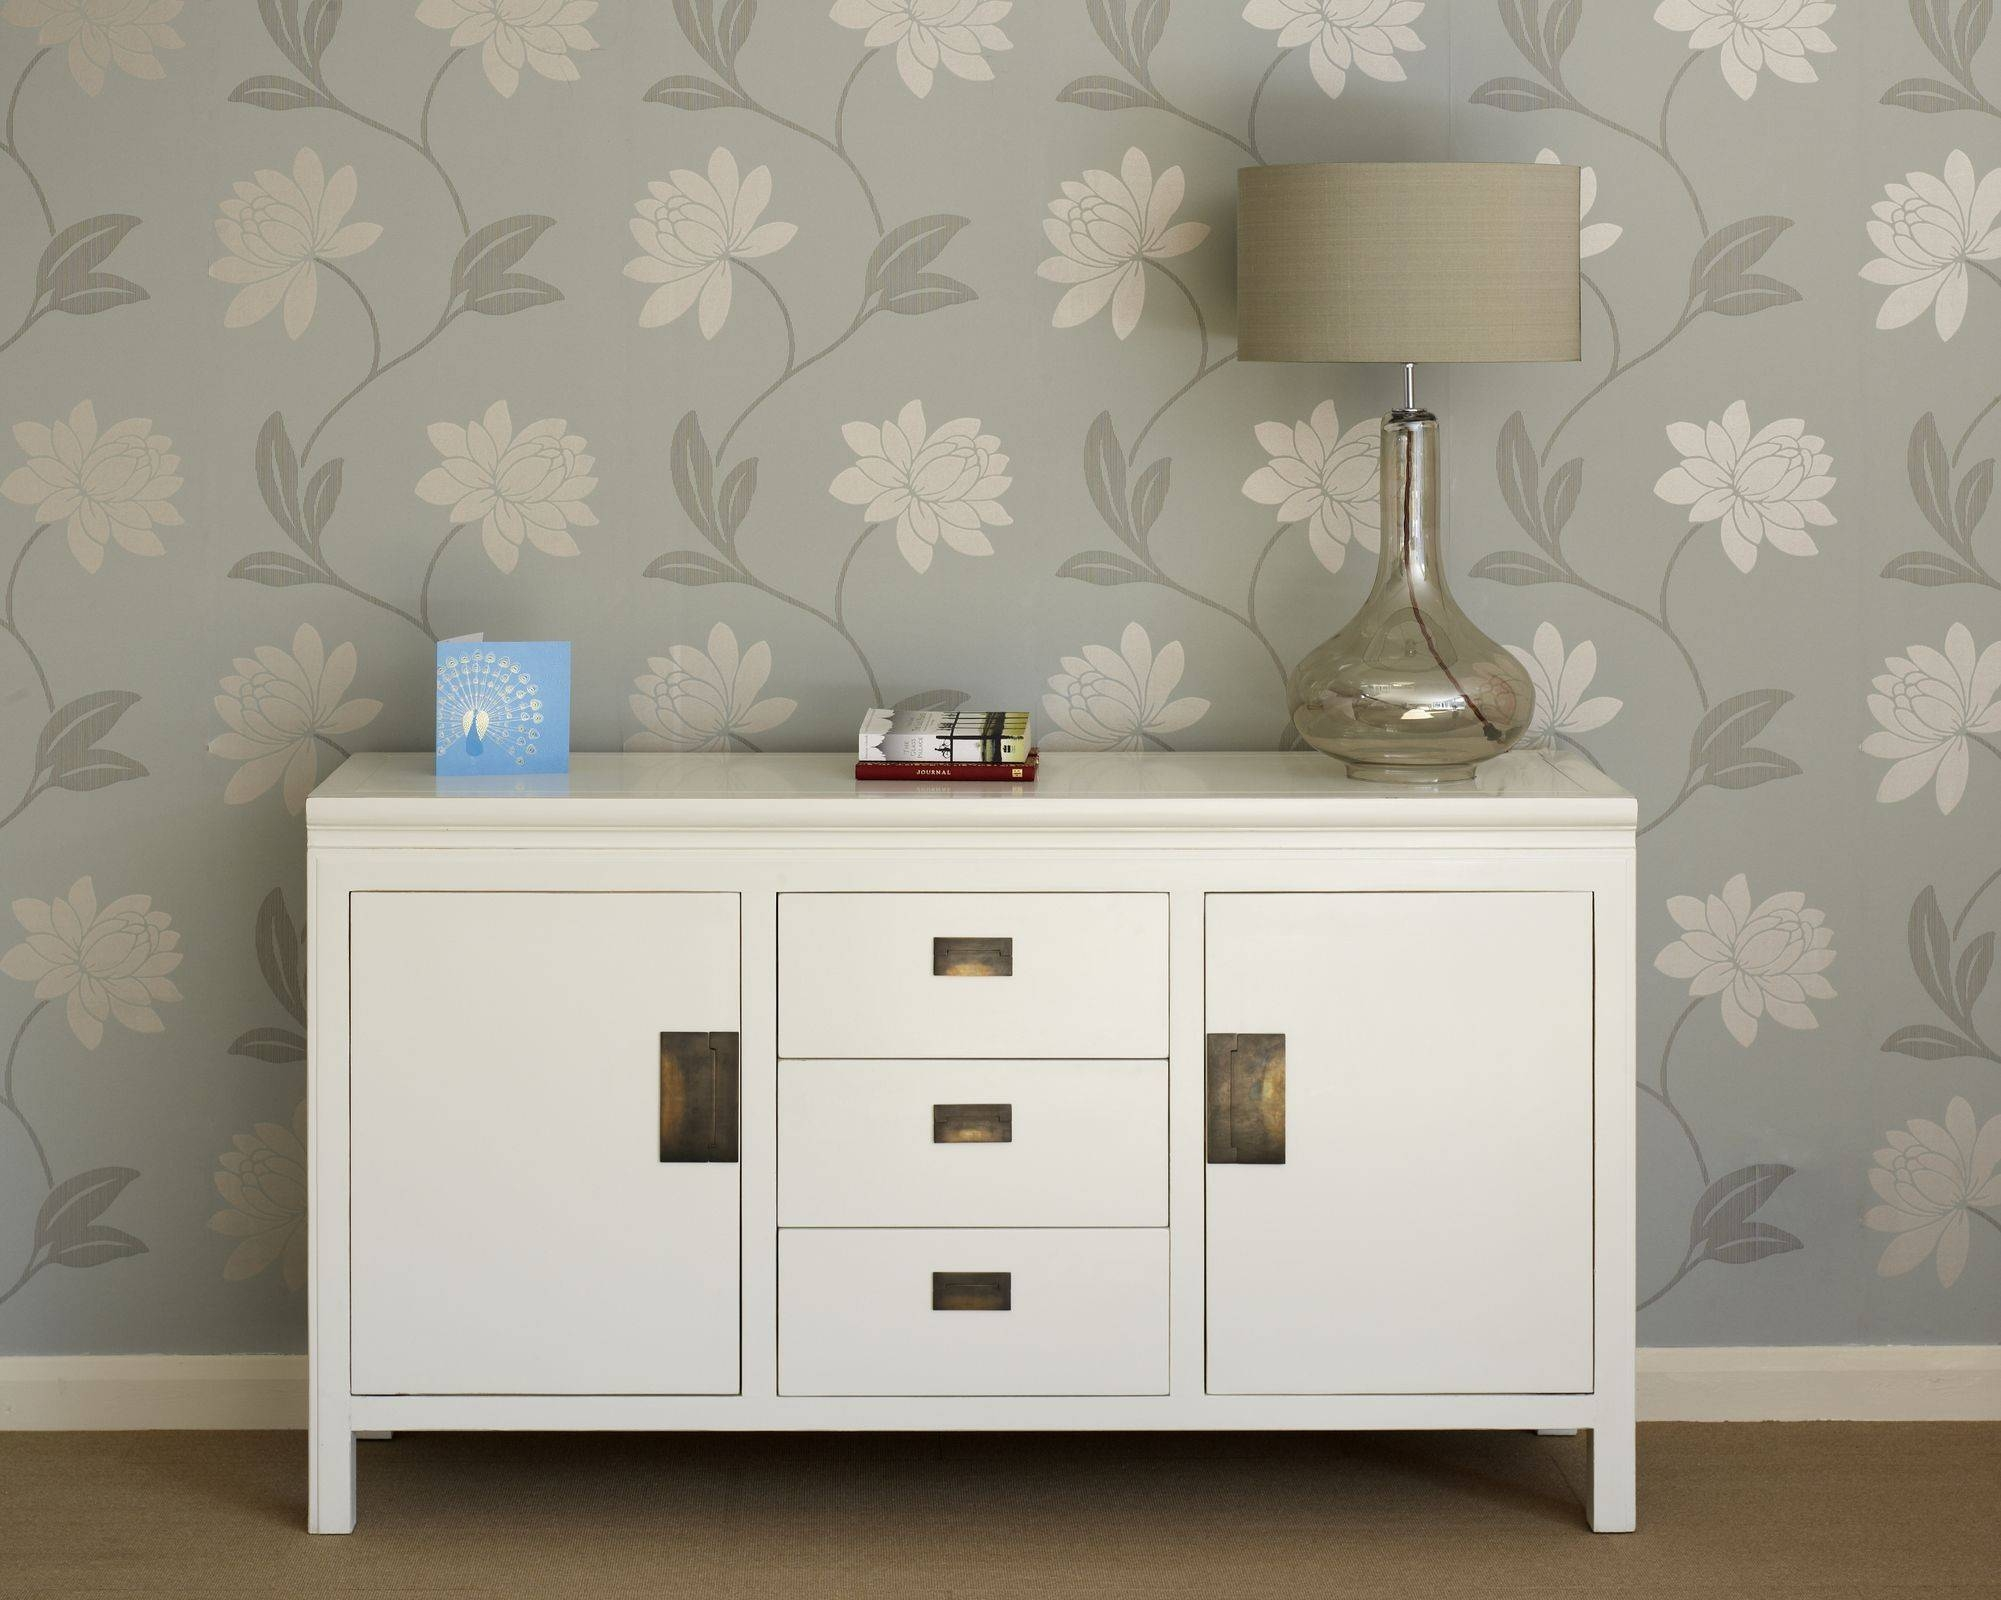 Oriental White Lacquer Sideboards – Shanxi Throughout Large White Sideboards (#11 of 15)